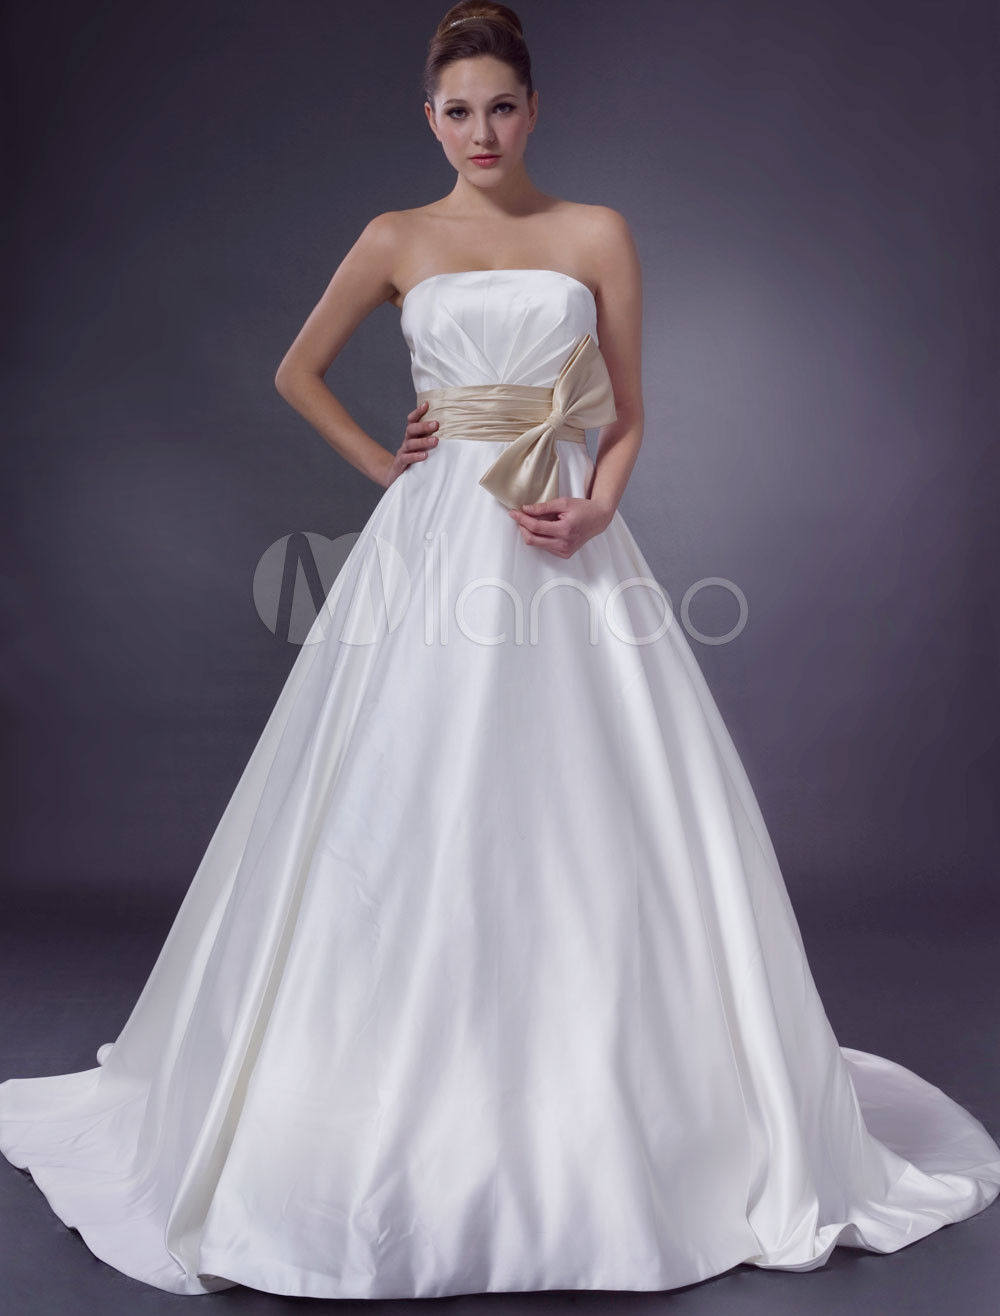 A-Line Strapless Waist Ribbon Chapel Train Satin Wedding Dress